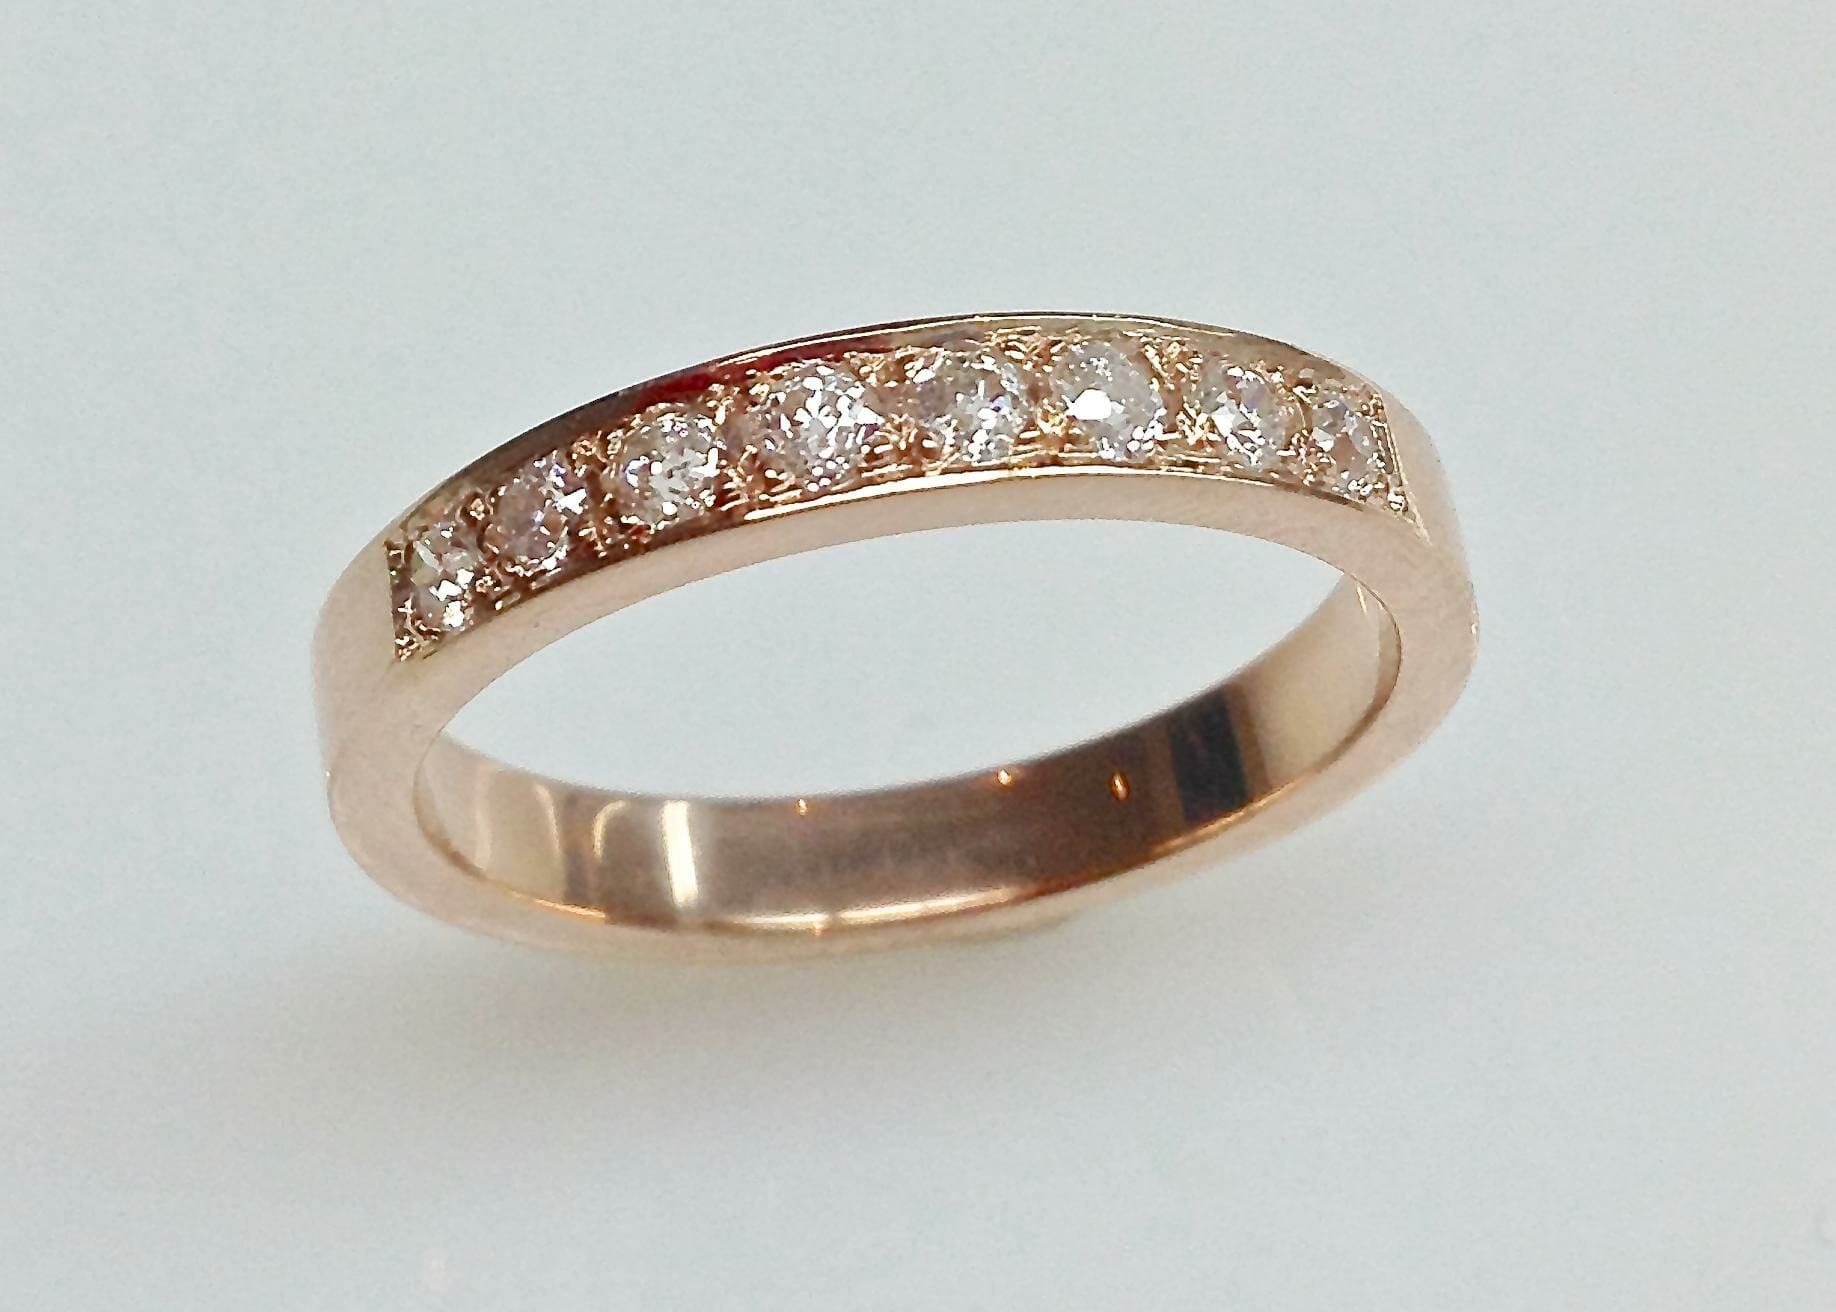 rose gold wedding ring with pave diamonds keezing kreations